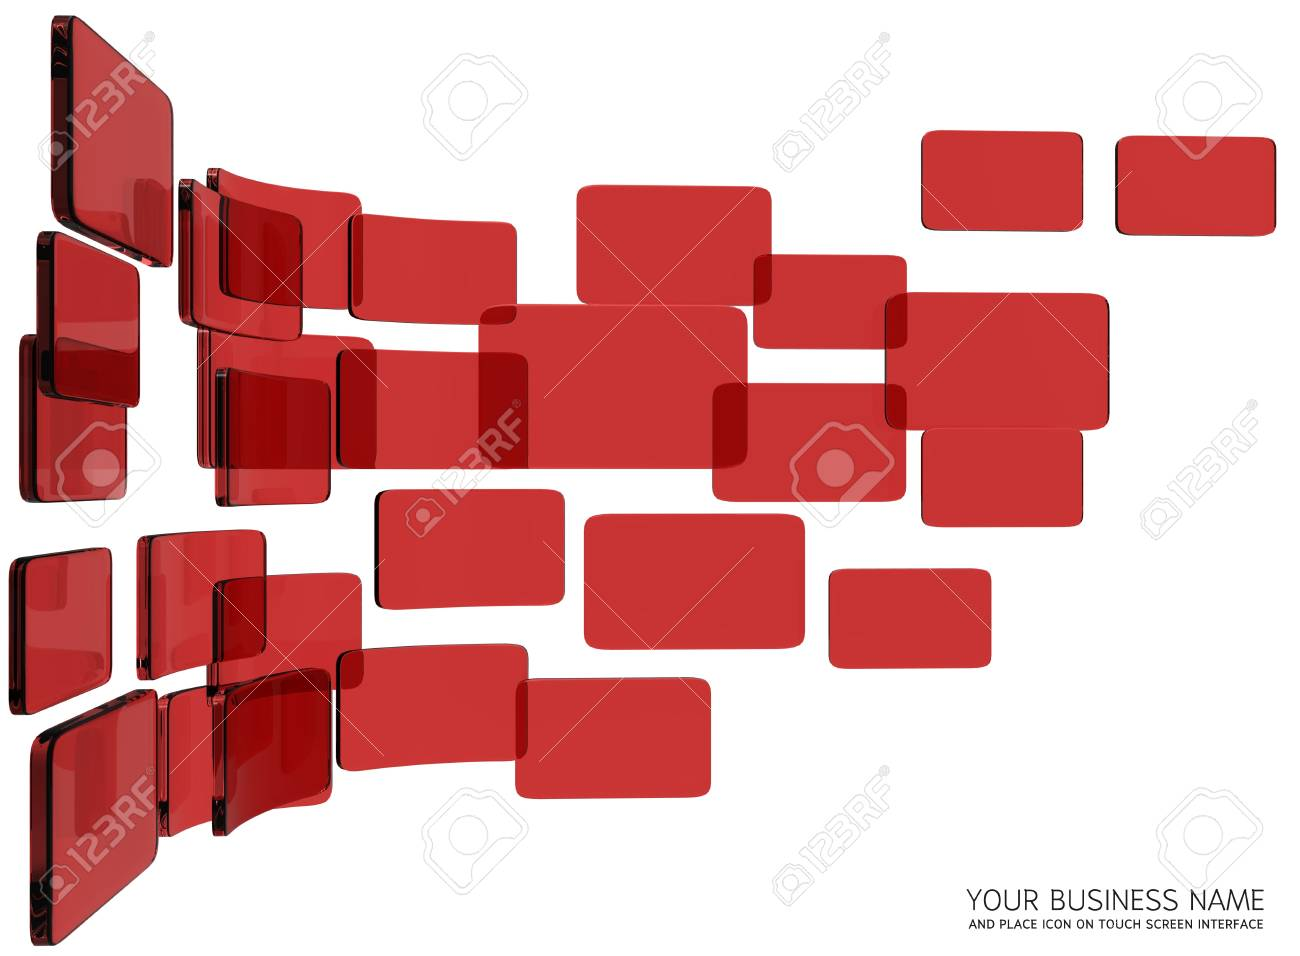 touch screen interface Red glass Stock Photo - 11422925